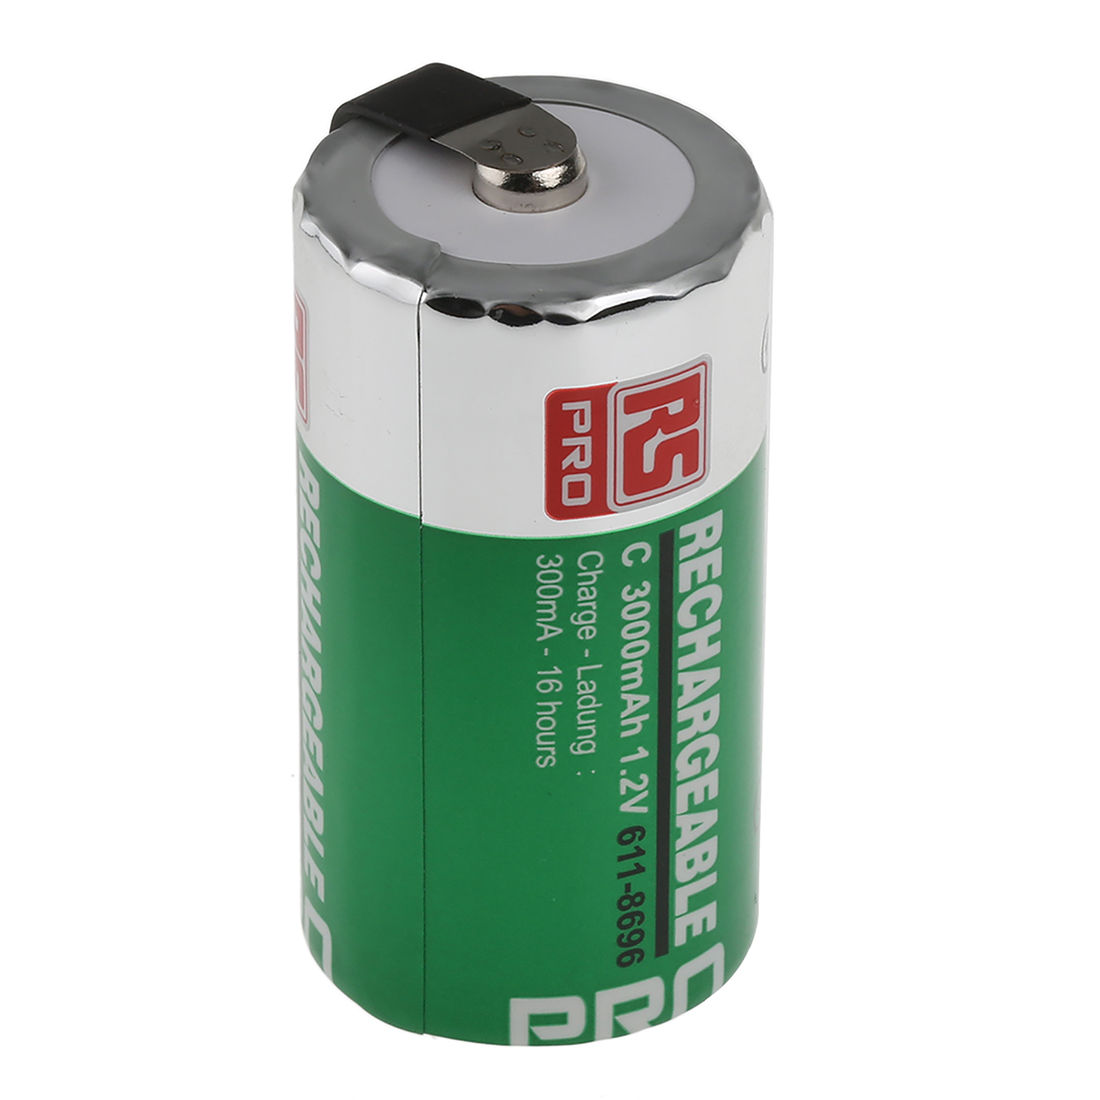 RS PRO NiMH C Rechargeable Battery, 3Ah